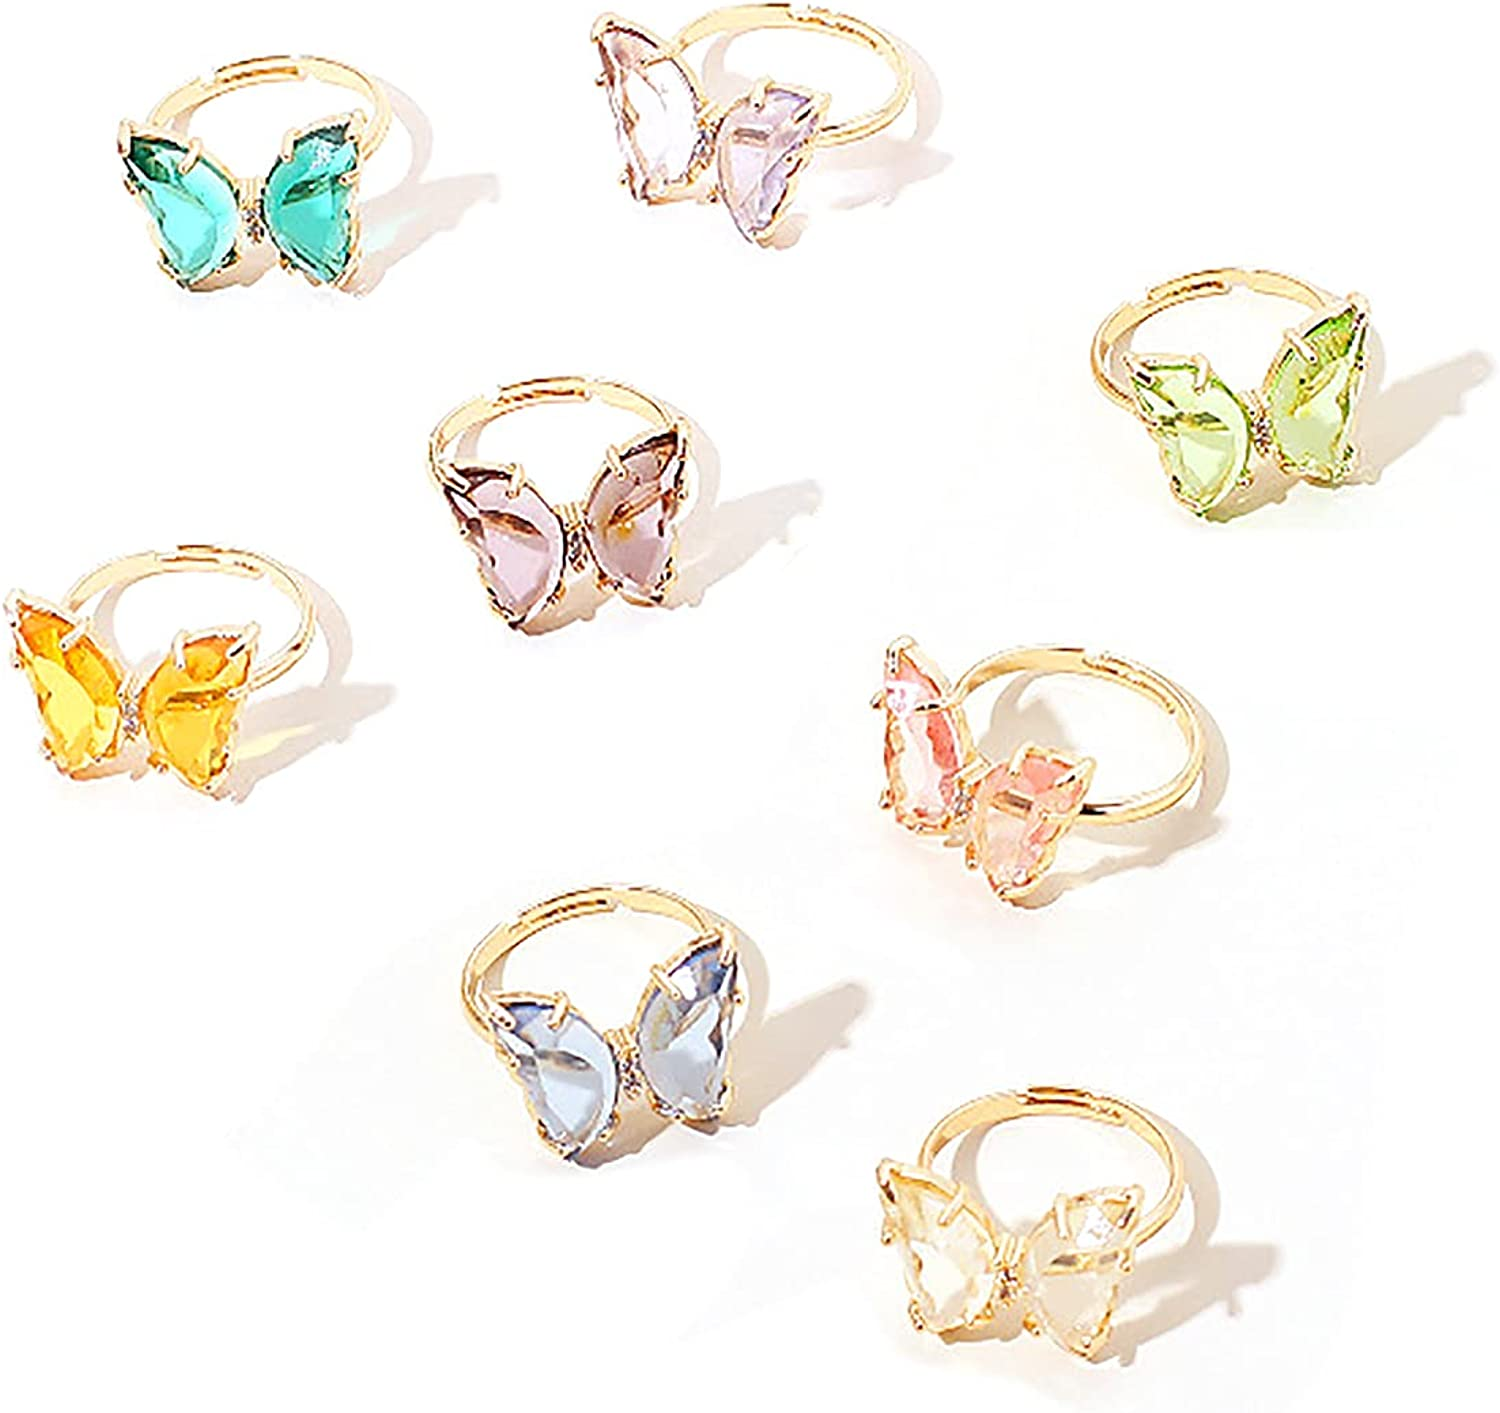 8pcs Dainty Butterfly Rings Set Acrylic Crystal Colorful Cuff Open Adjustable Size for Women Girls Teens Lovely Animal Jewelry